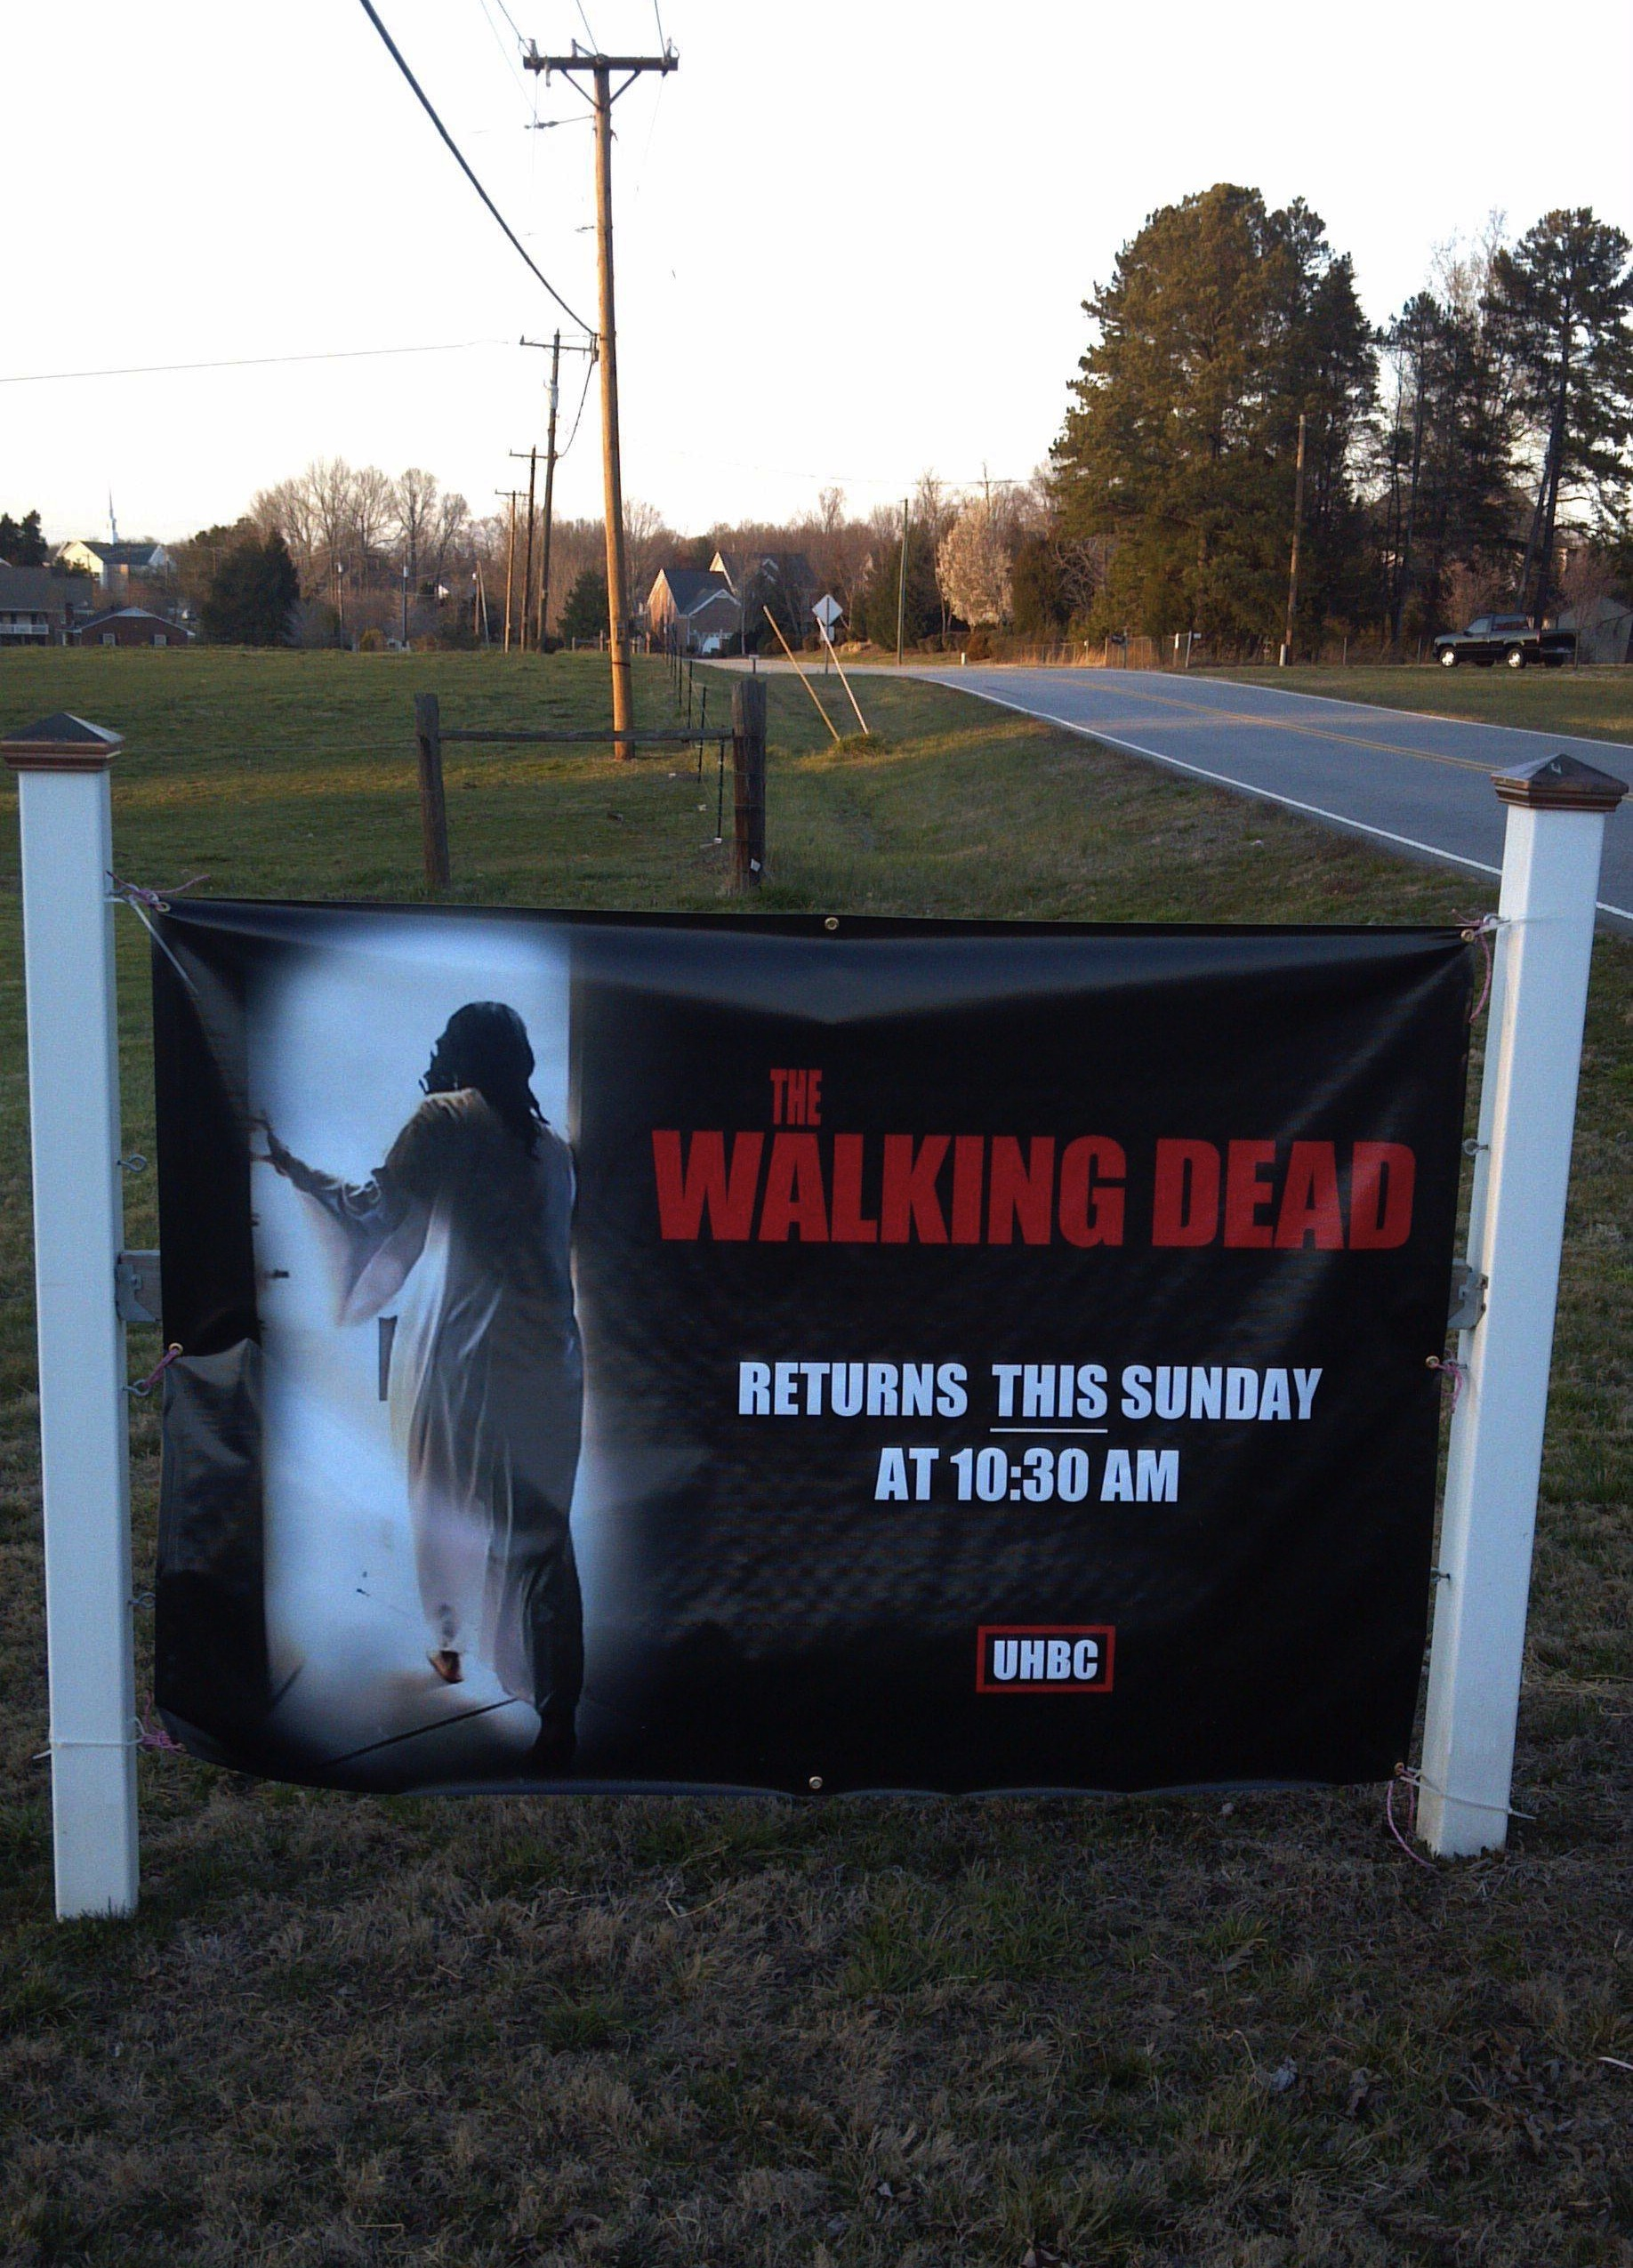 Baptist church tries to pack Easter mass by cashing in on the zombie craze.